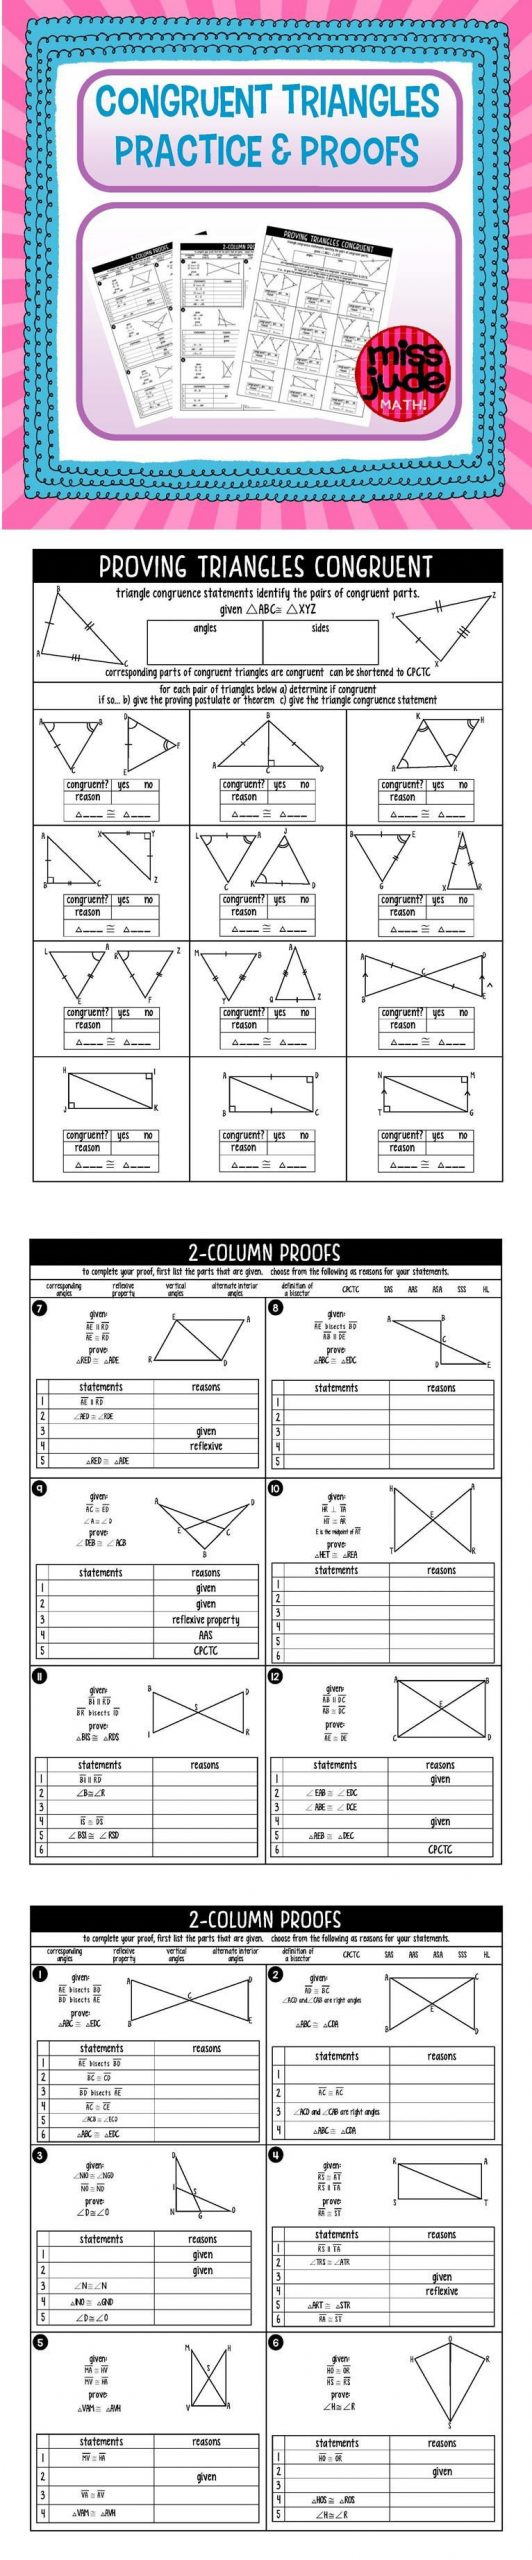 Proving Triangles Congruent Worksheet Congruent Triangles Practice and Proofs Geometry